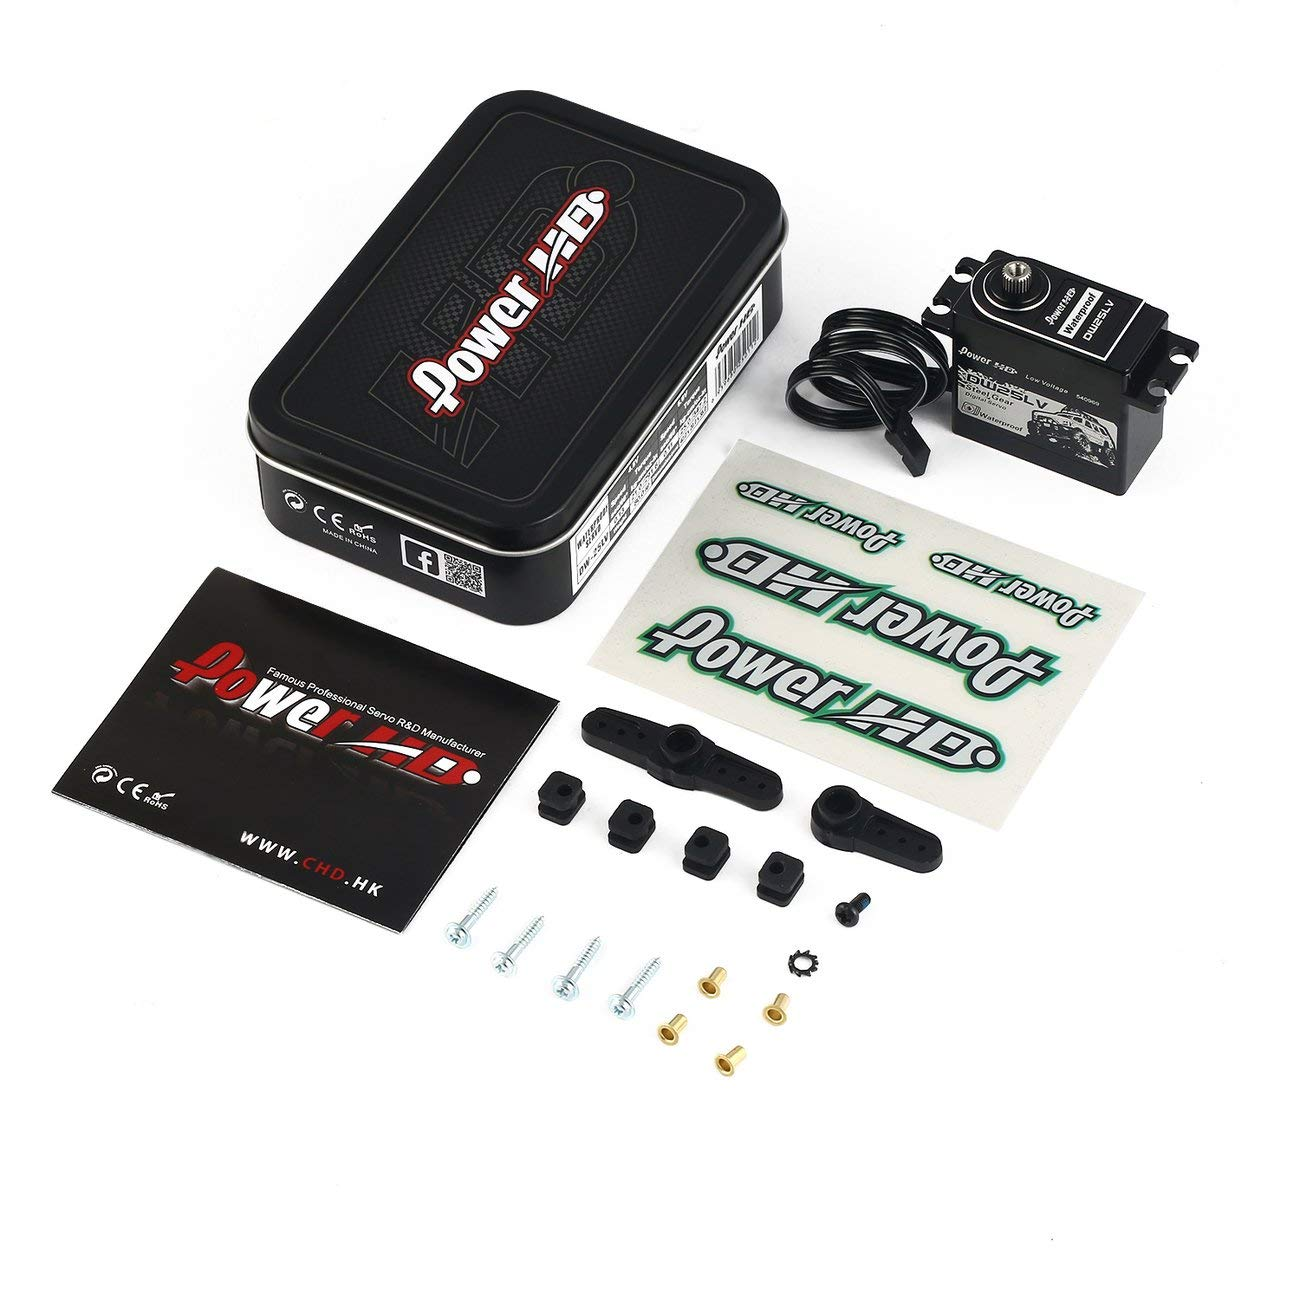 Power HD DW-25LV Wasserdicht 25kg Metal Gear Digital Servo für 1/10 RC Auto Boot Jiobapiongxin